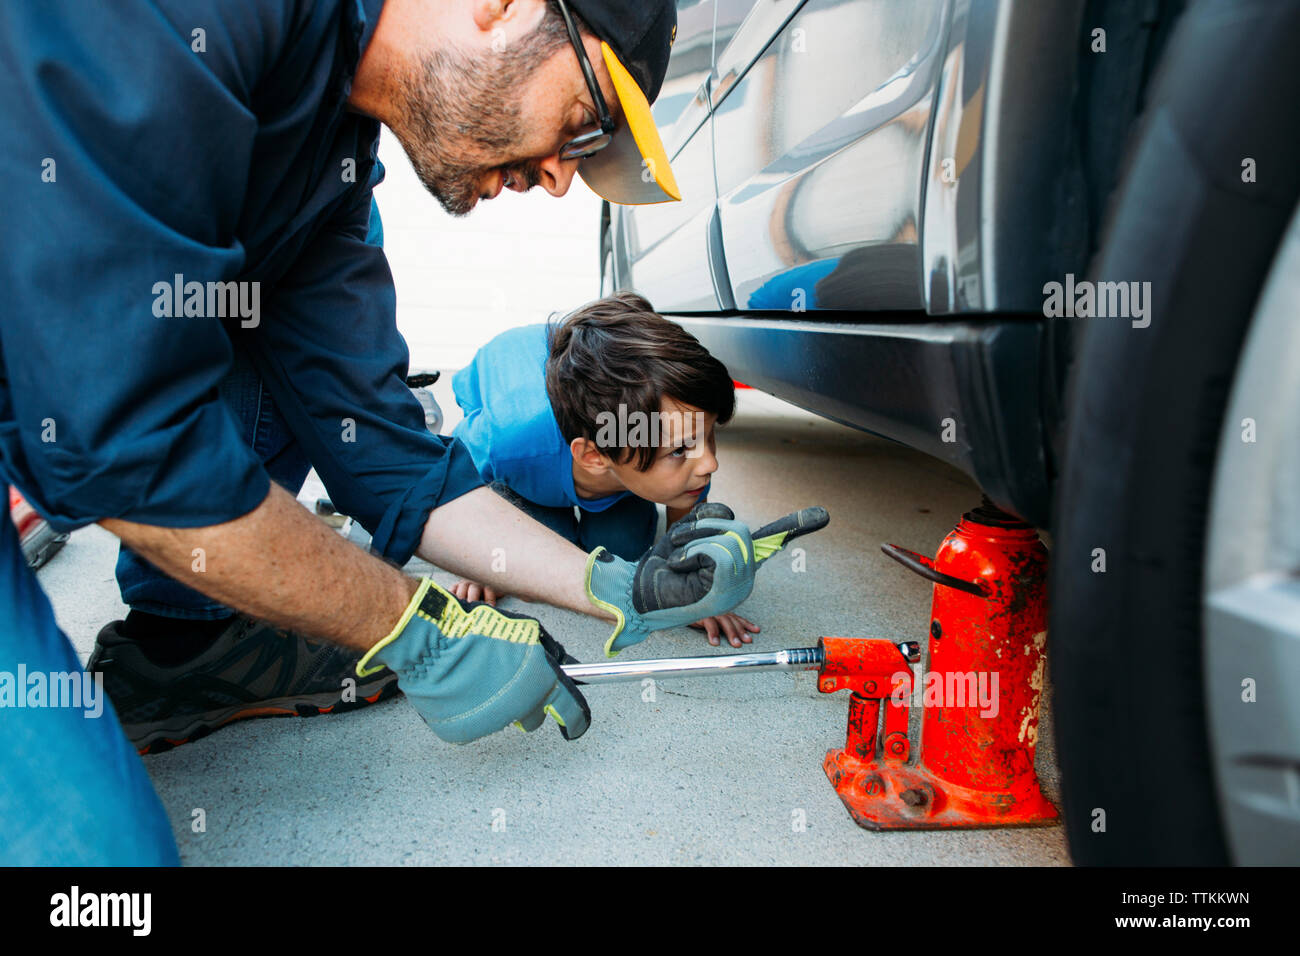 Father guiding son while using car jack to repair car at driveway - Stock Image